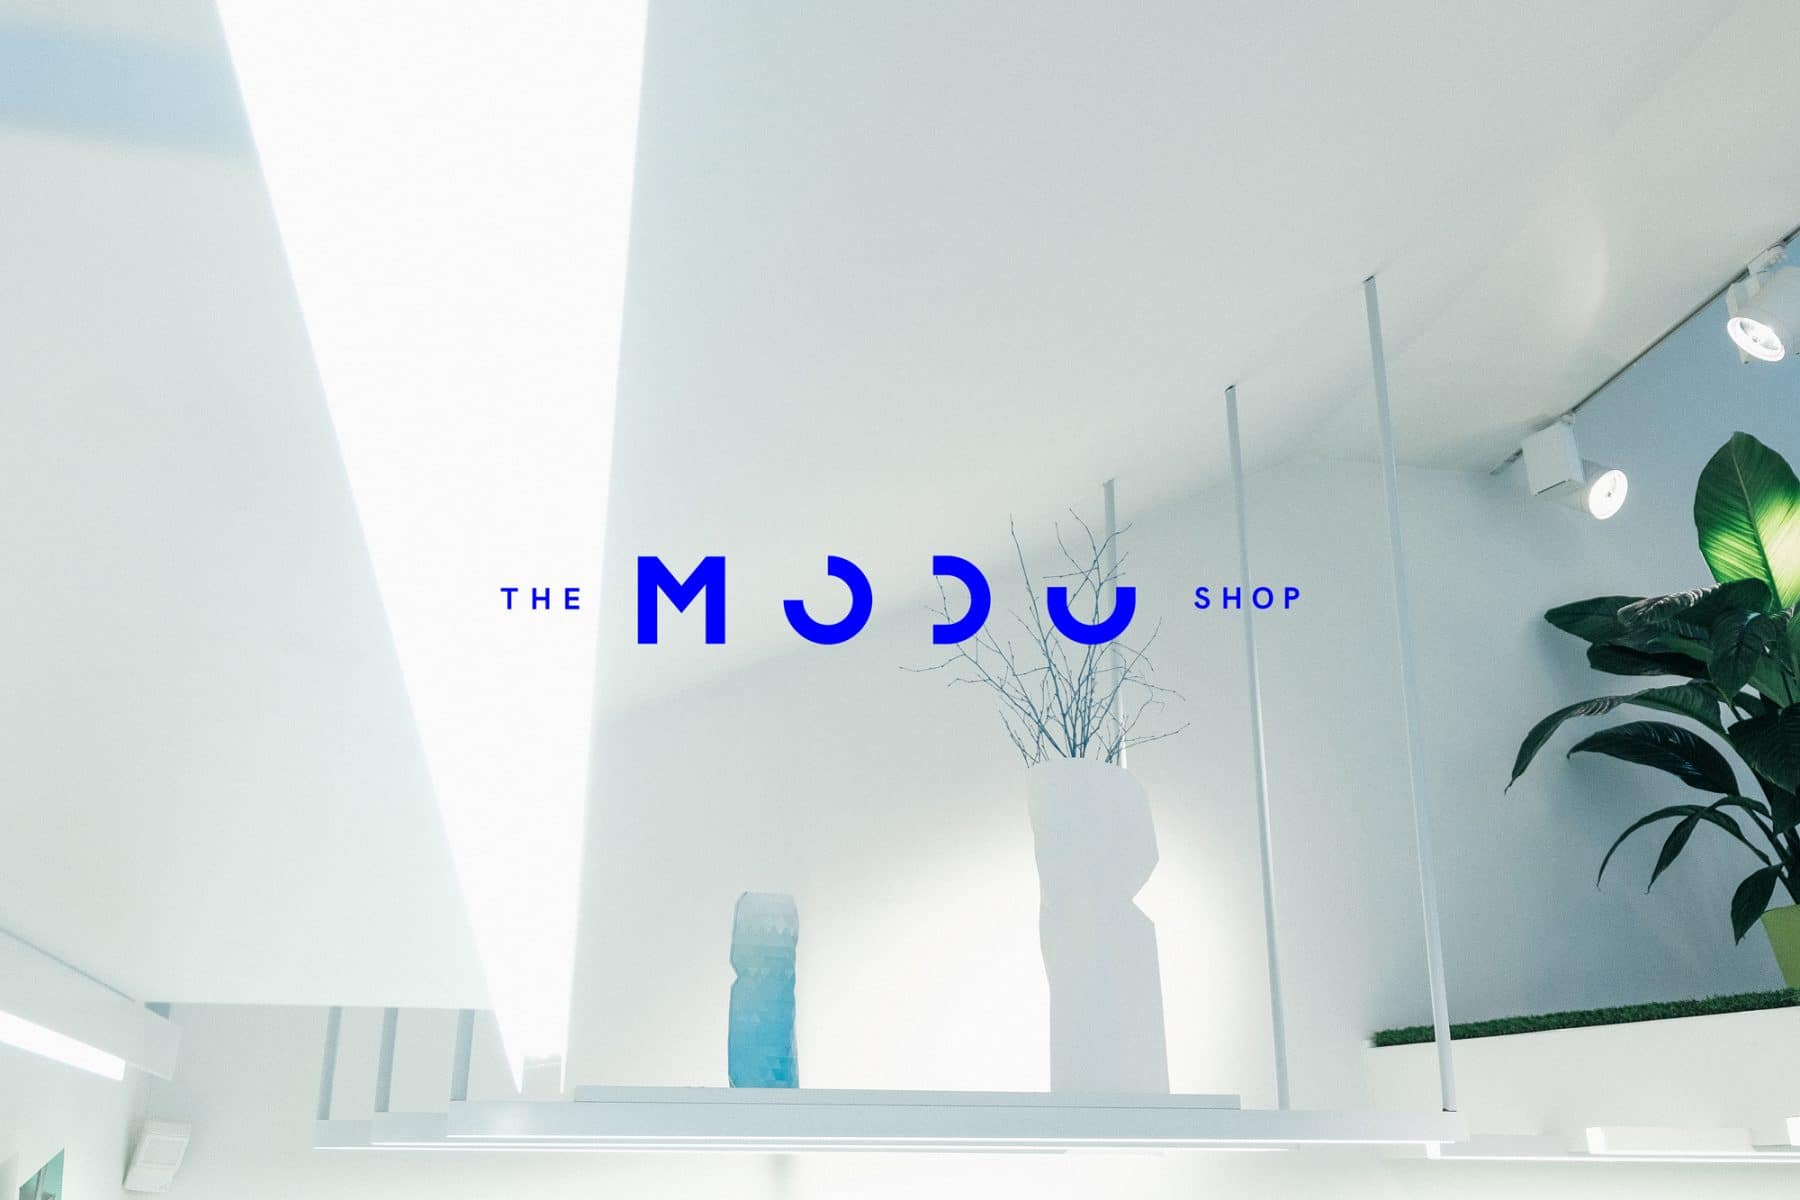 Kinlake-Modu-shop-featured